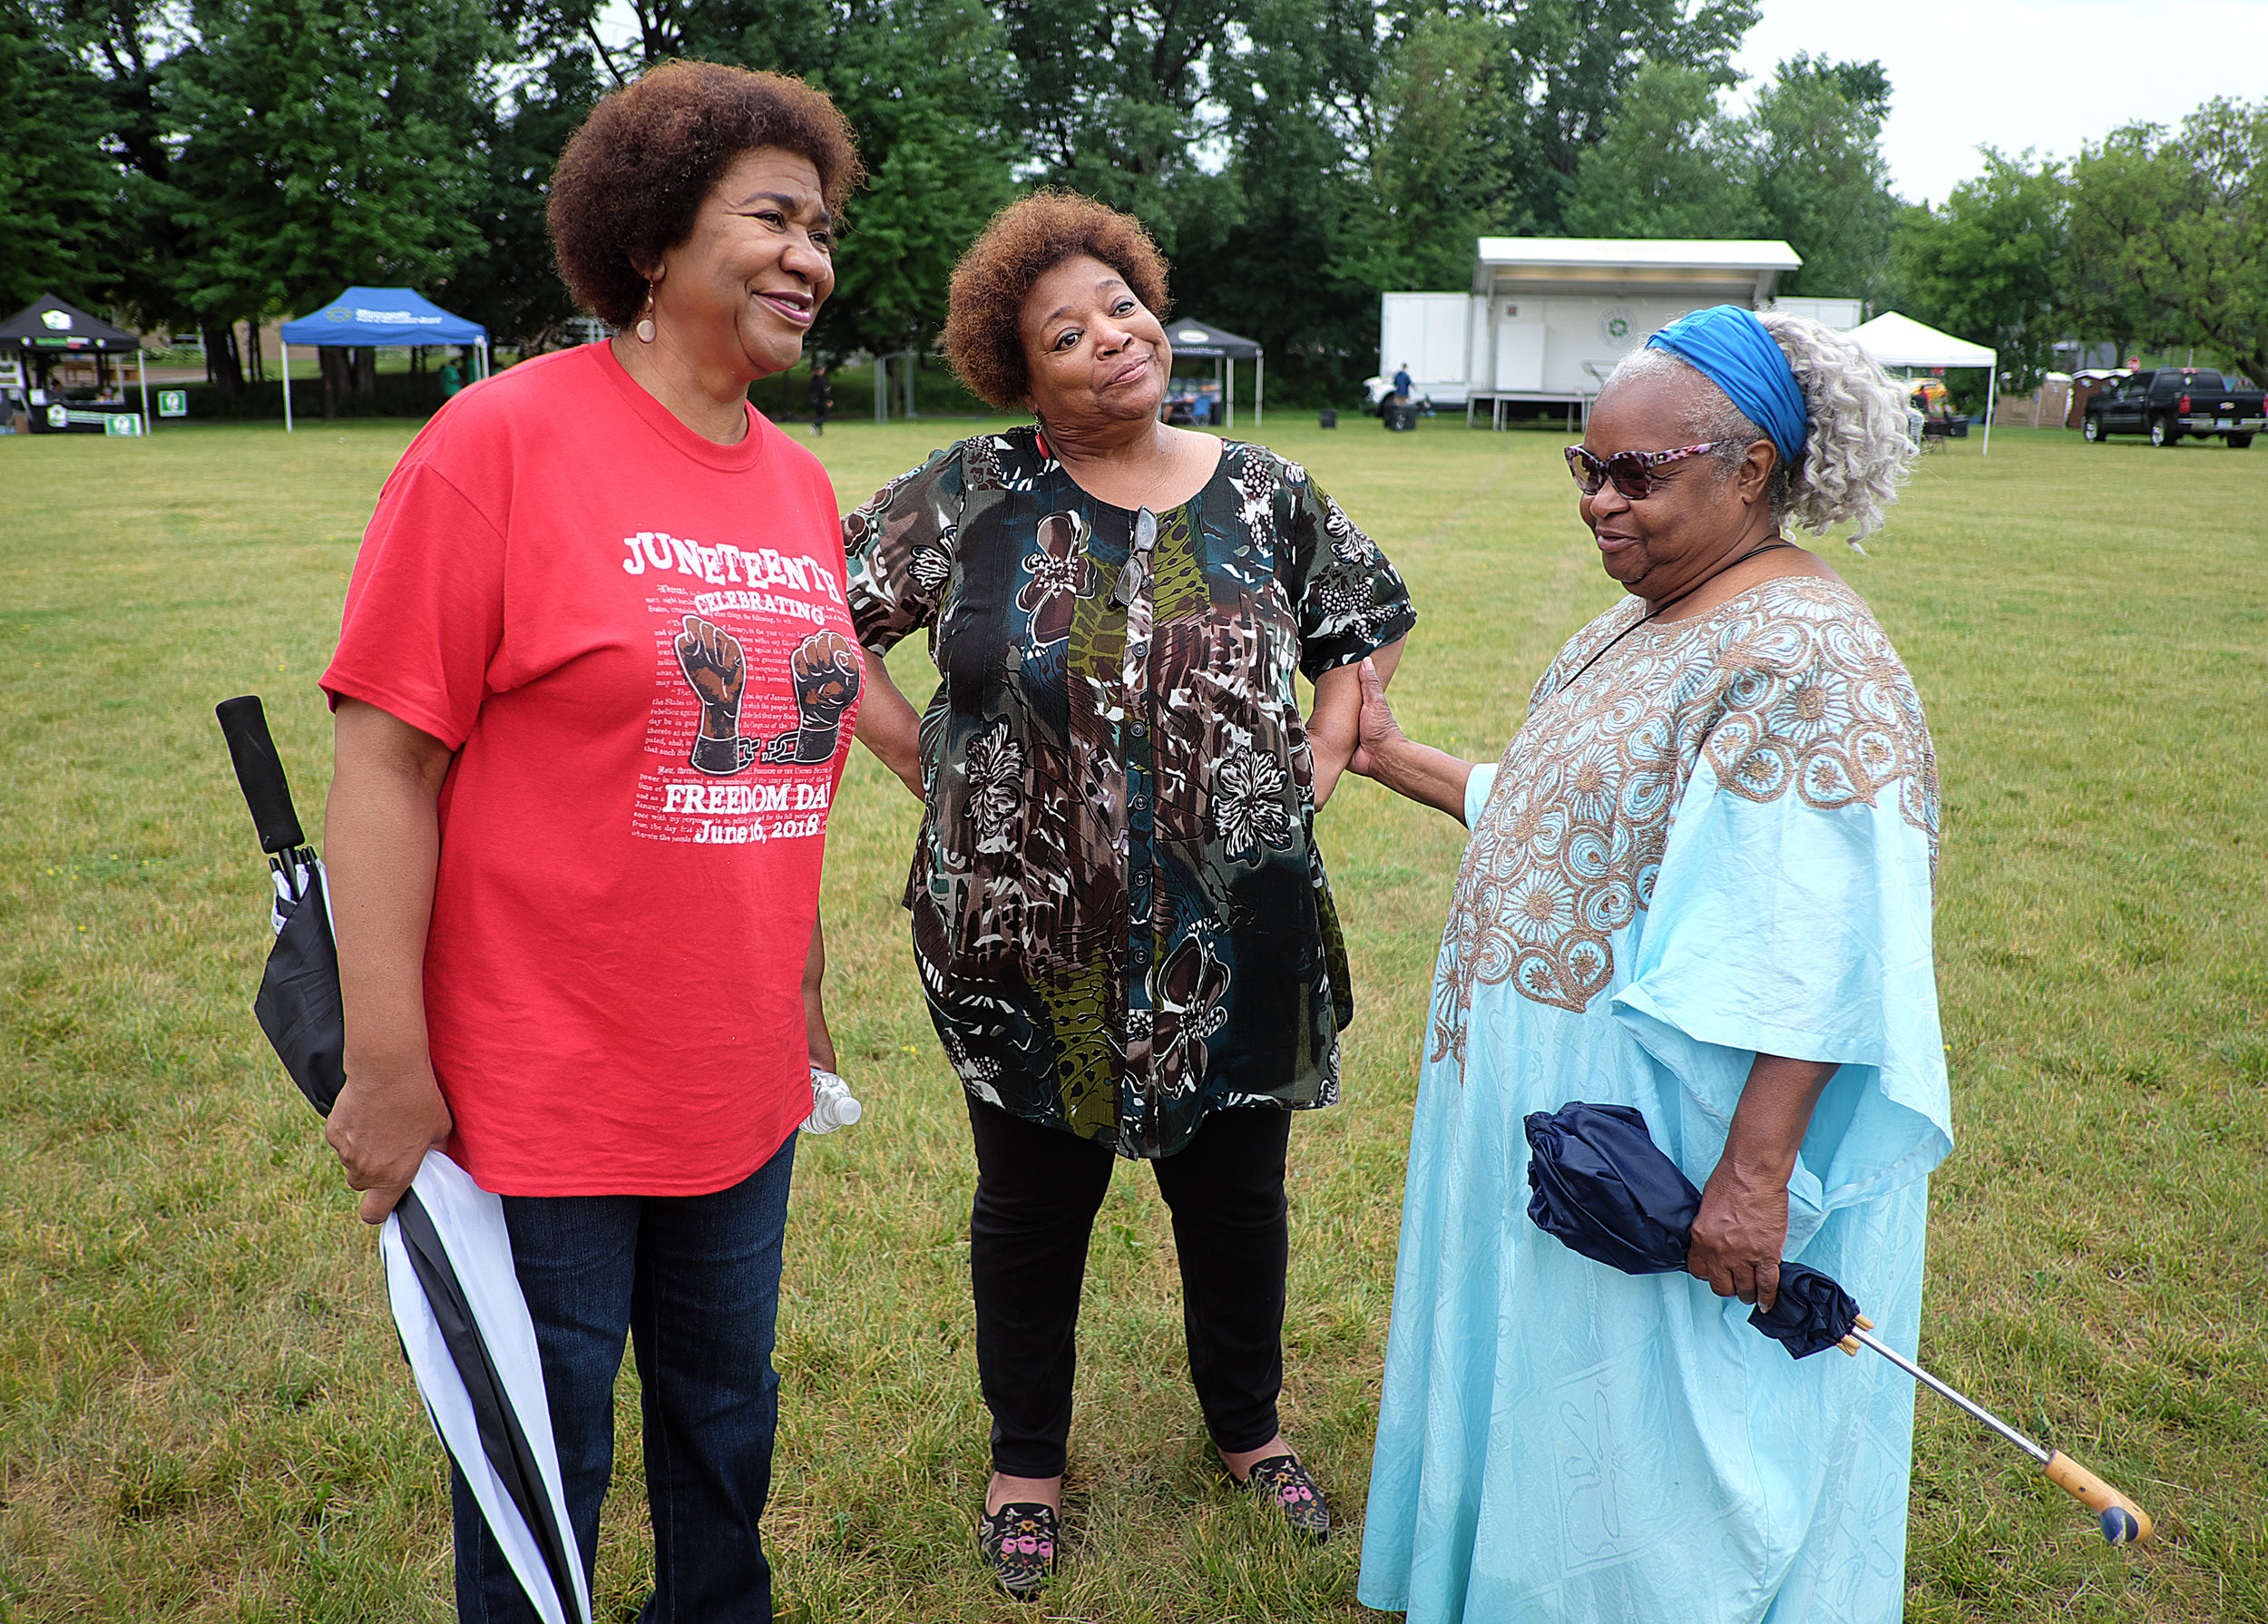 """Freedom Day, a celebration of Juneteenth, was held in Bethune Park this year. Park Board Superintendent Mary Merrill (left) was instrumental in making it happen. Renowned storyteller Nothando Zulu (right) performed a piece called """"Libations"""" on stage at the event."""